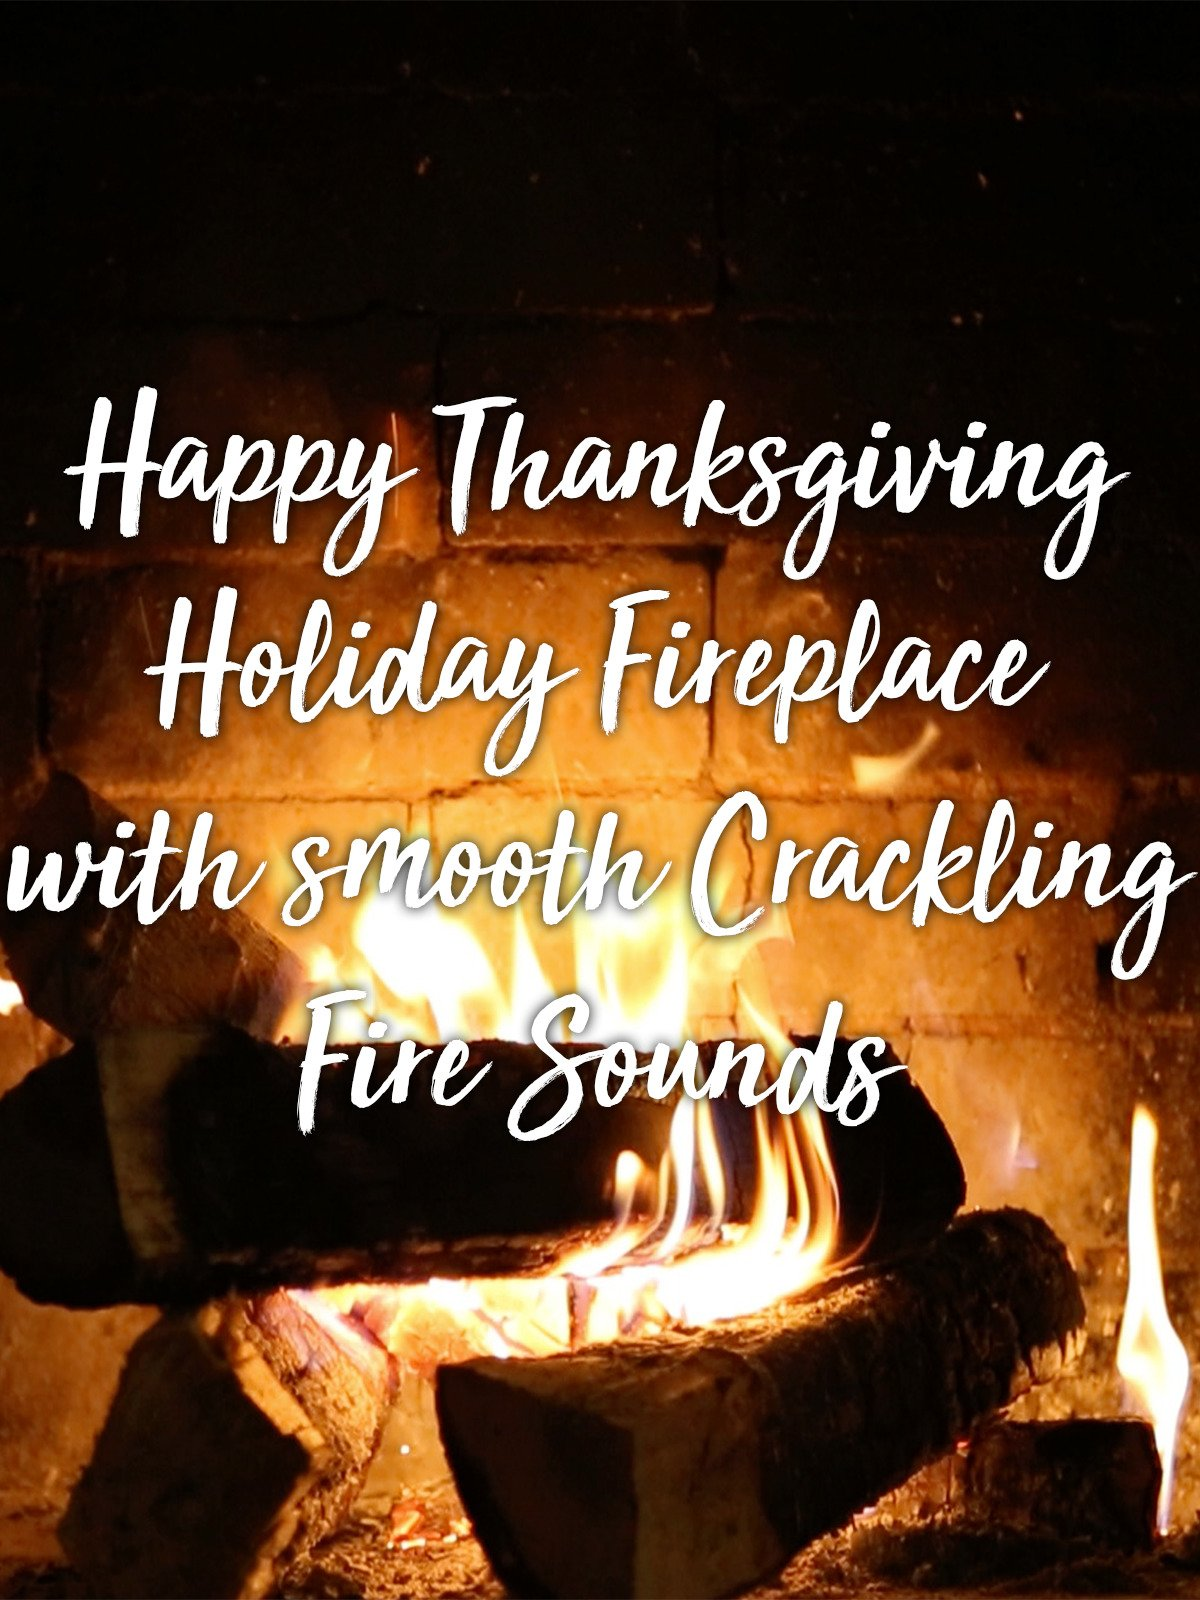 Happy Thanksgiving Holiday Fireplace with smooth Crackling Fire Sounds